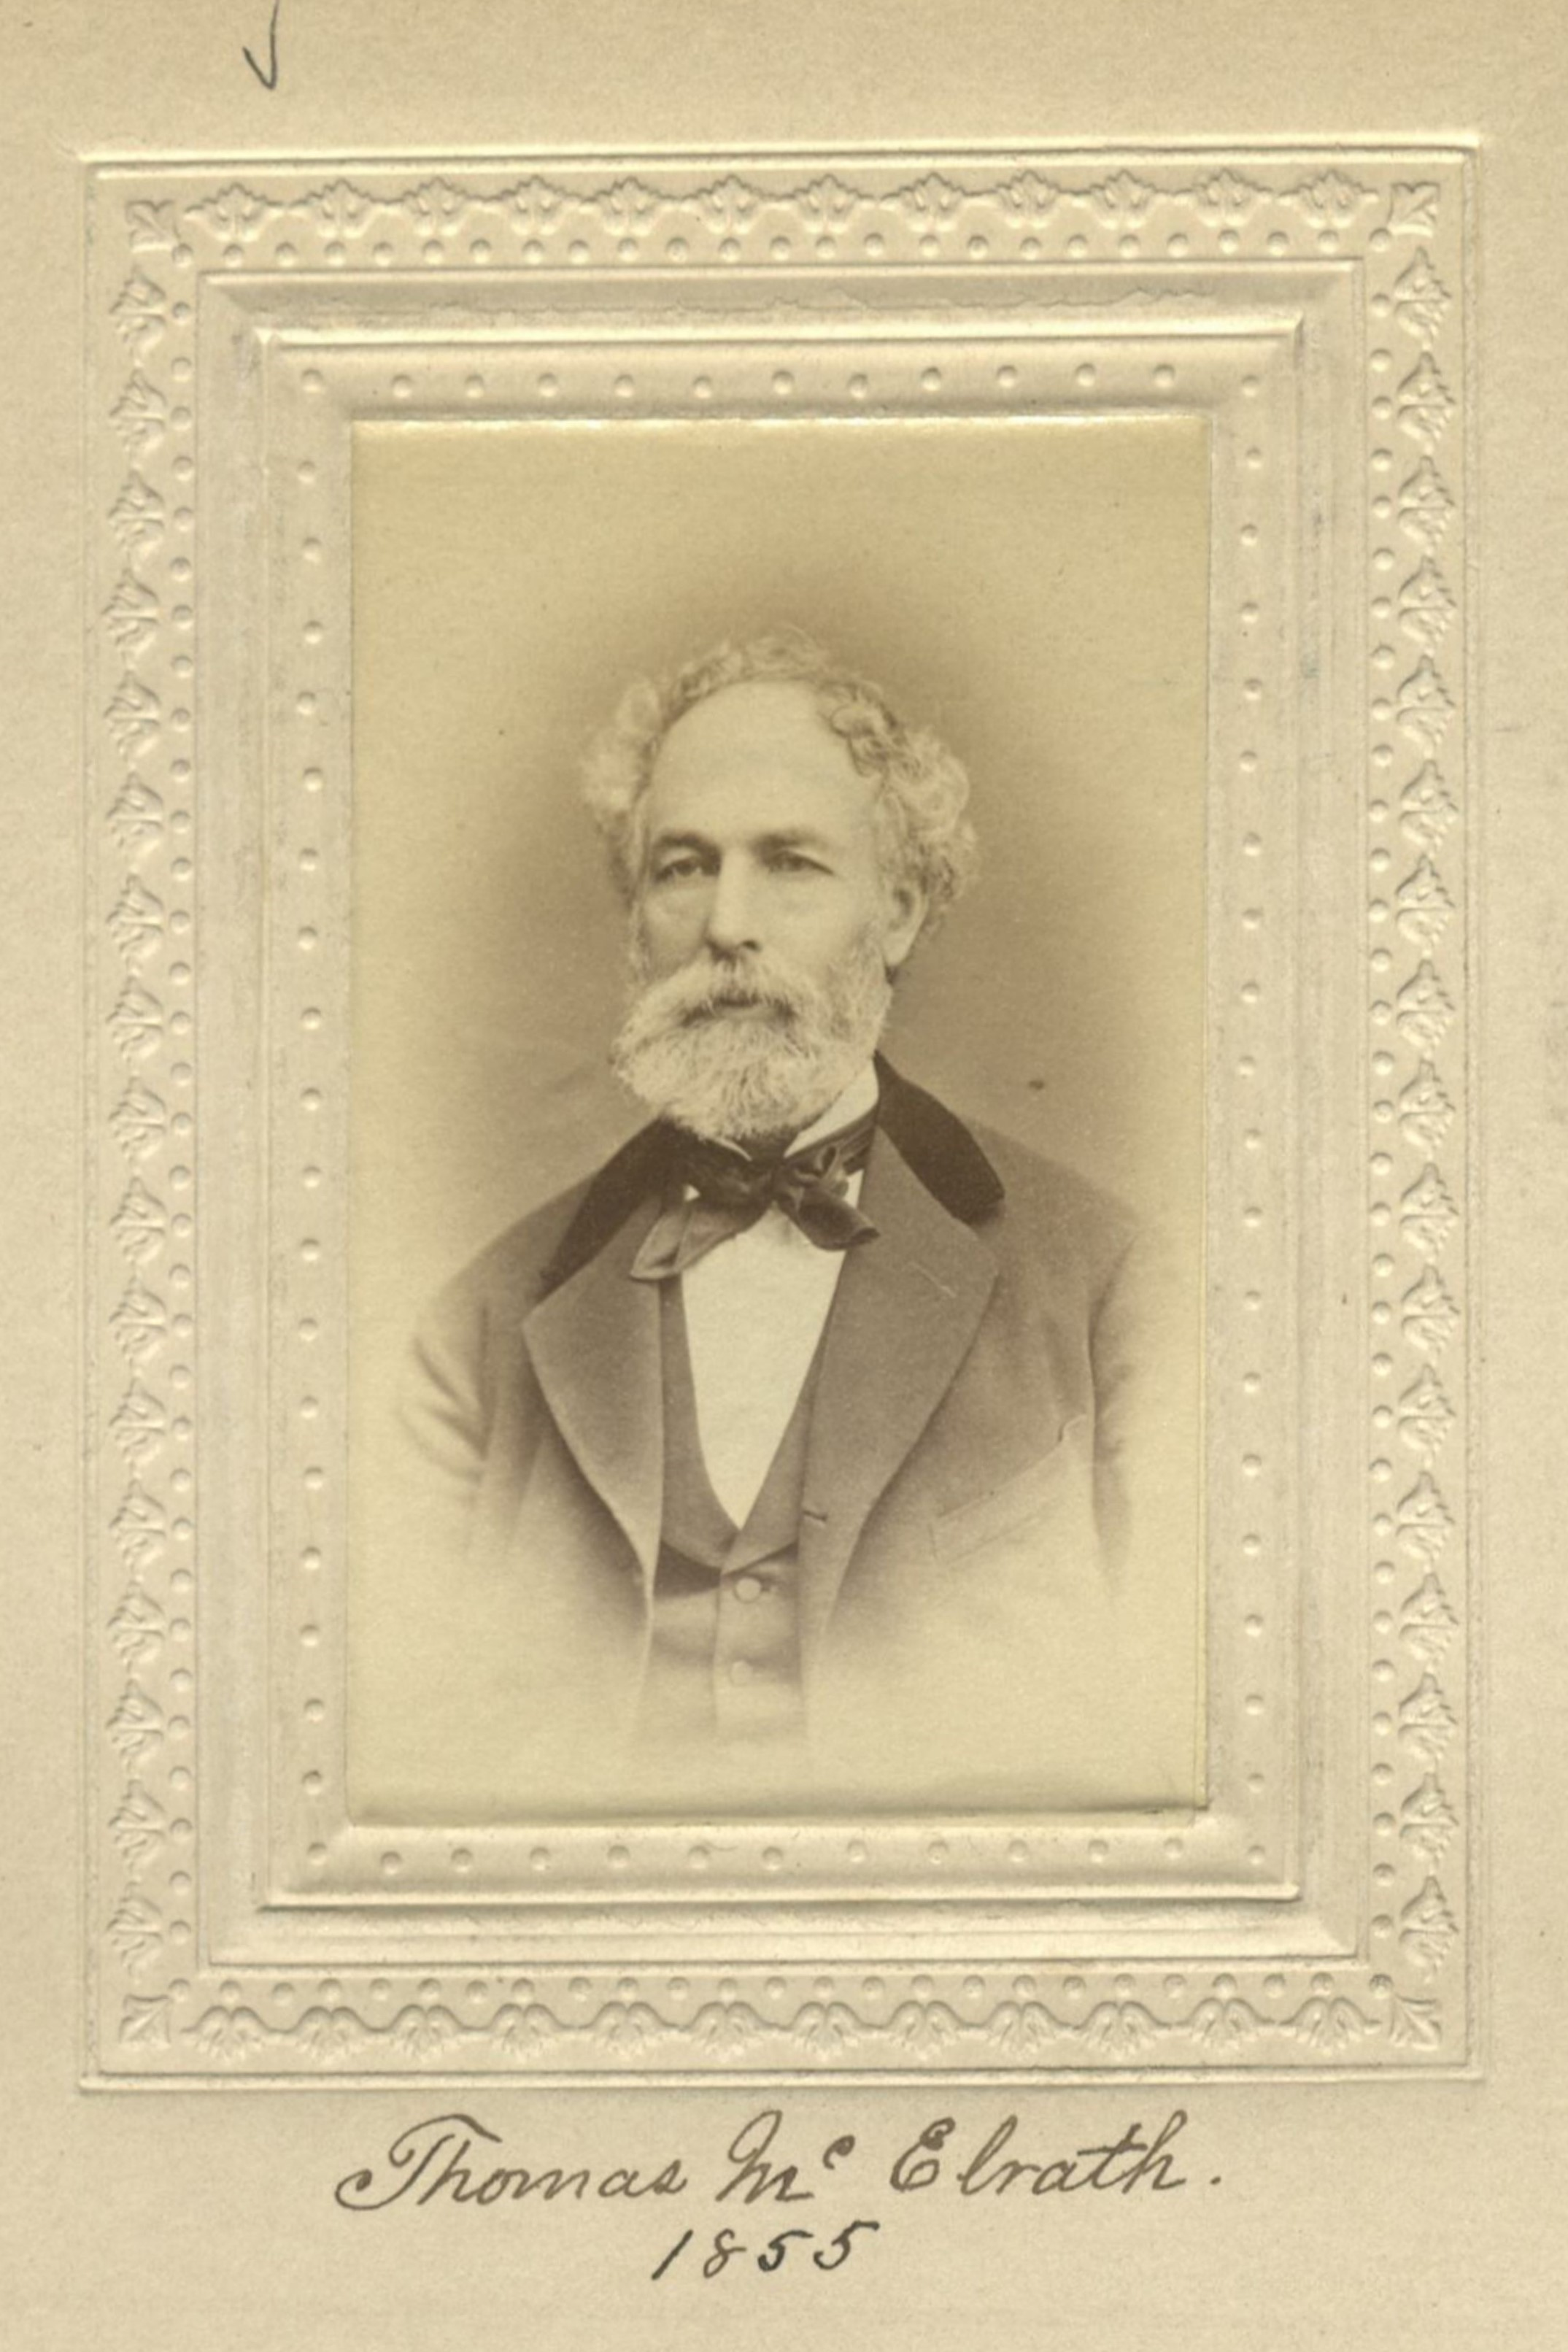 Member portrait of Thomas McElrath